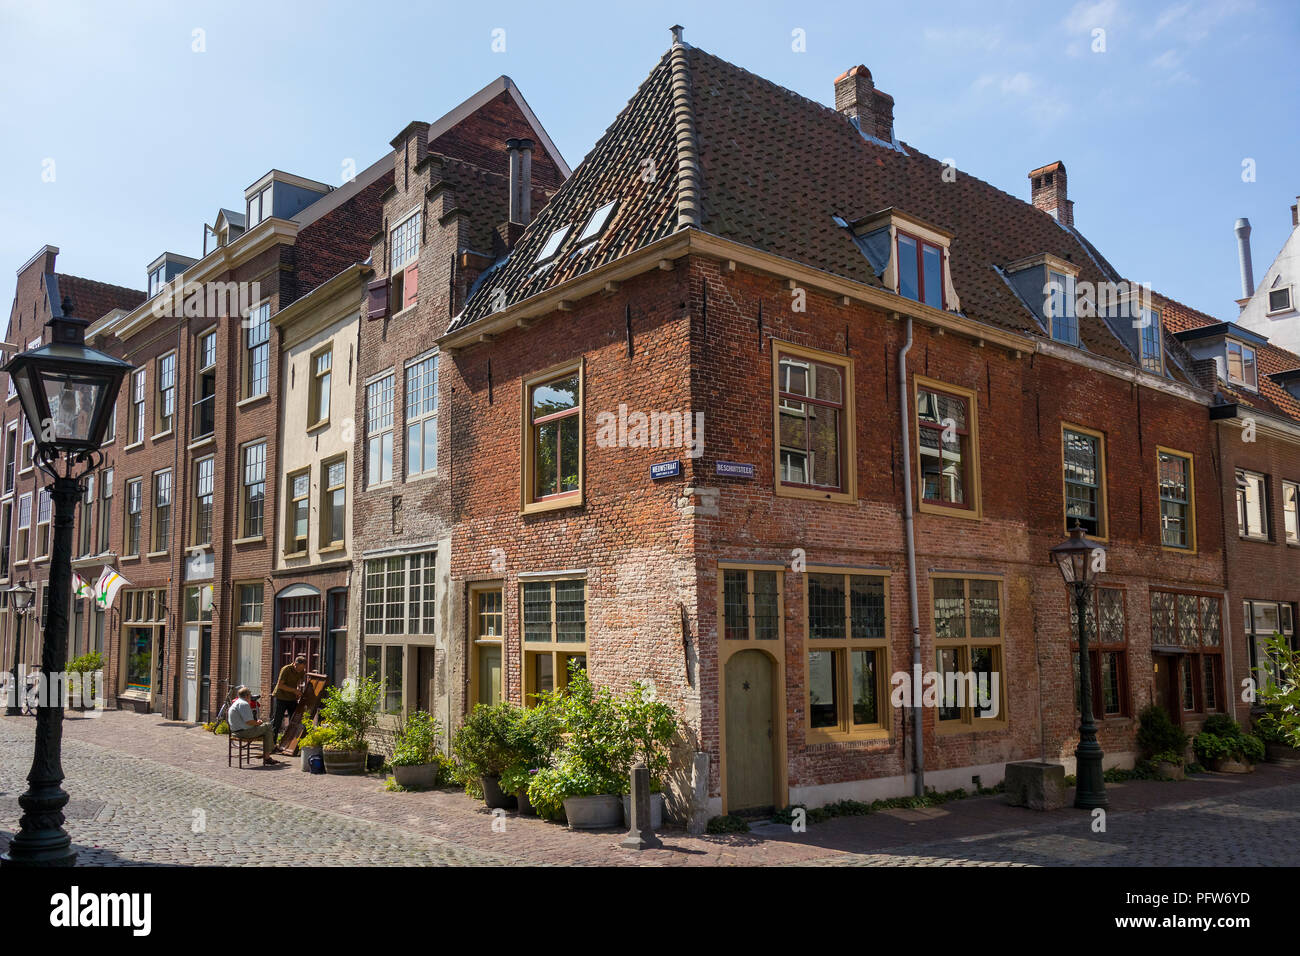 Leiden, Netherlands - July 17, 2018: Leiden American Pilgrim Fathers Museum at the corner of the Beschuitsteeg in Leiden - Stock Image